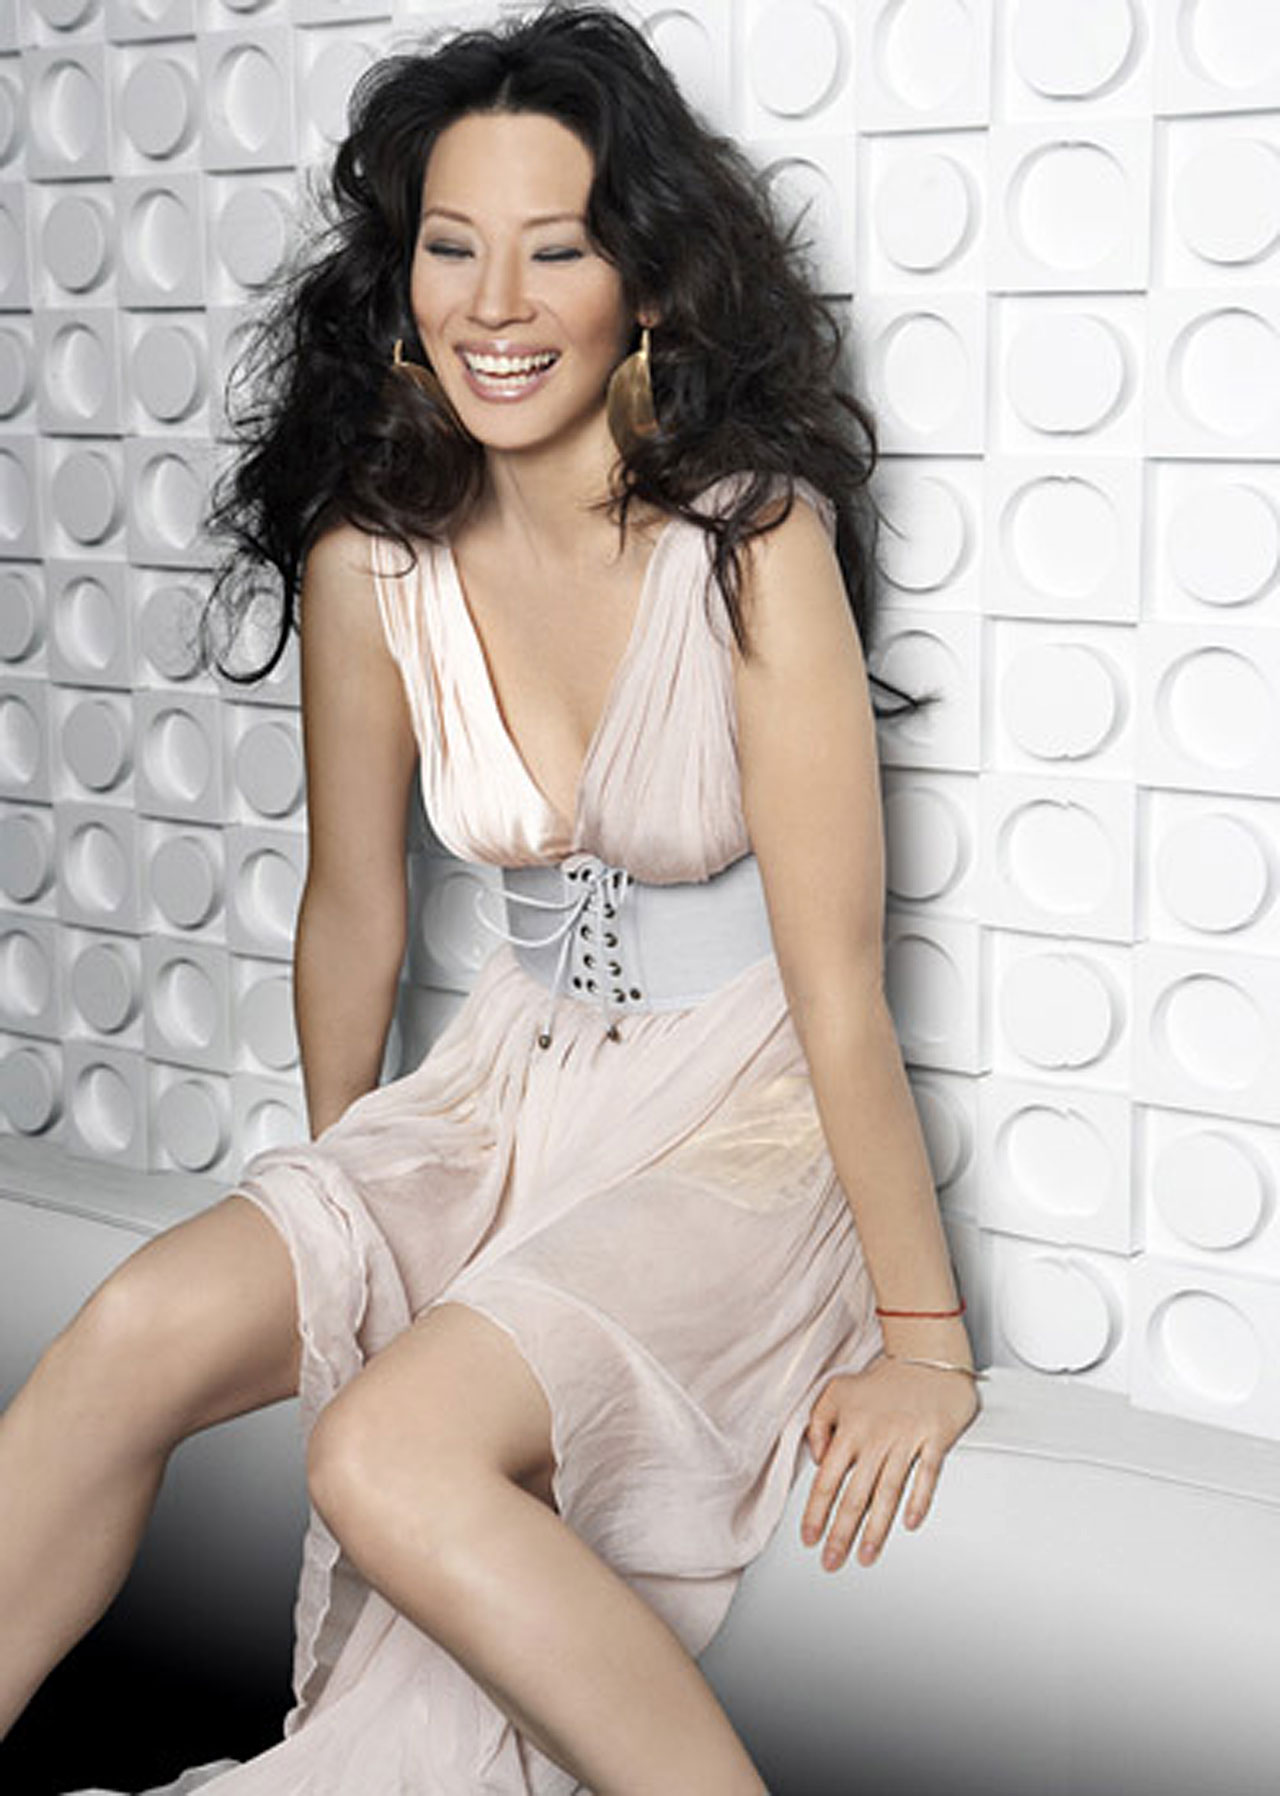 Nude pictures of lucy liu pics 574